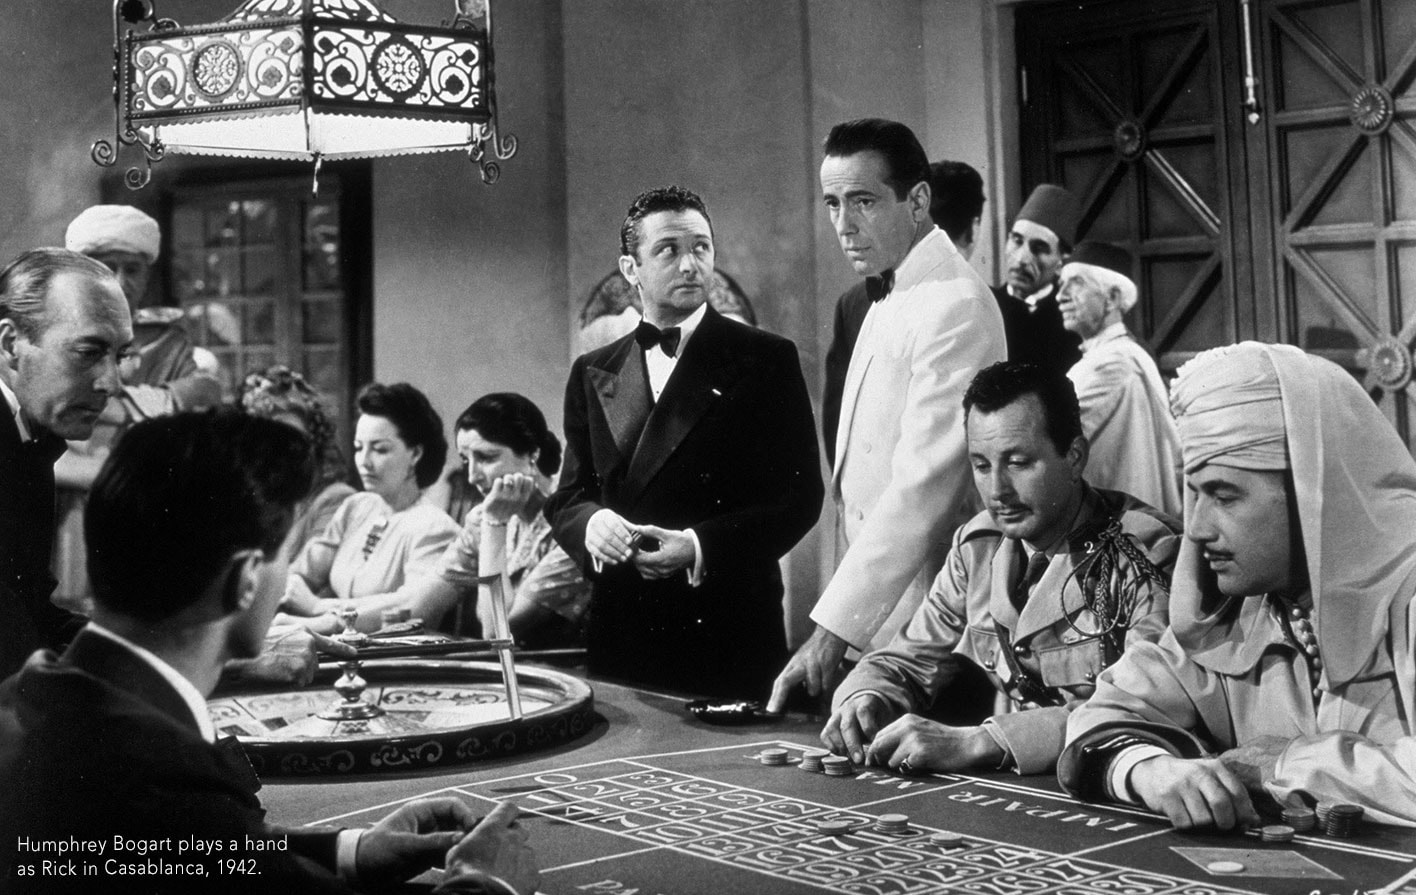 Humphrey Bogart plays a hand as Rick in Casablanca, 1942.